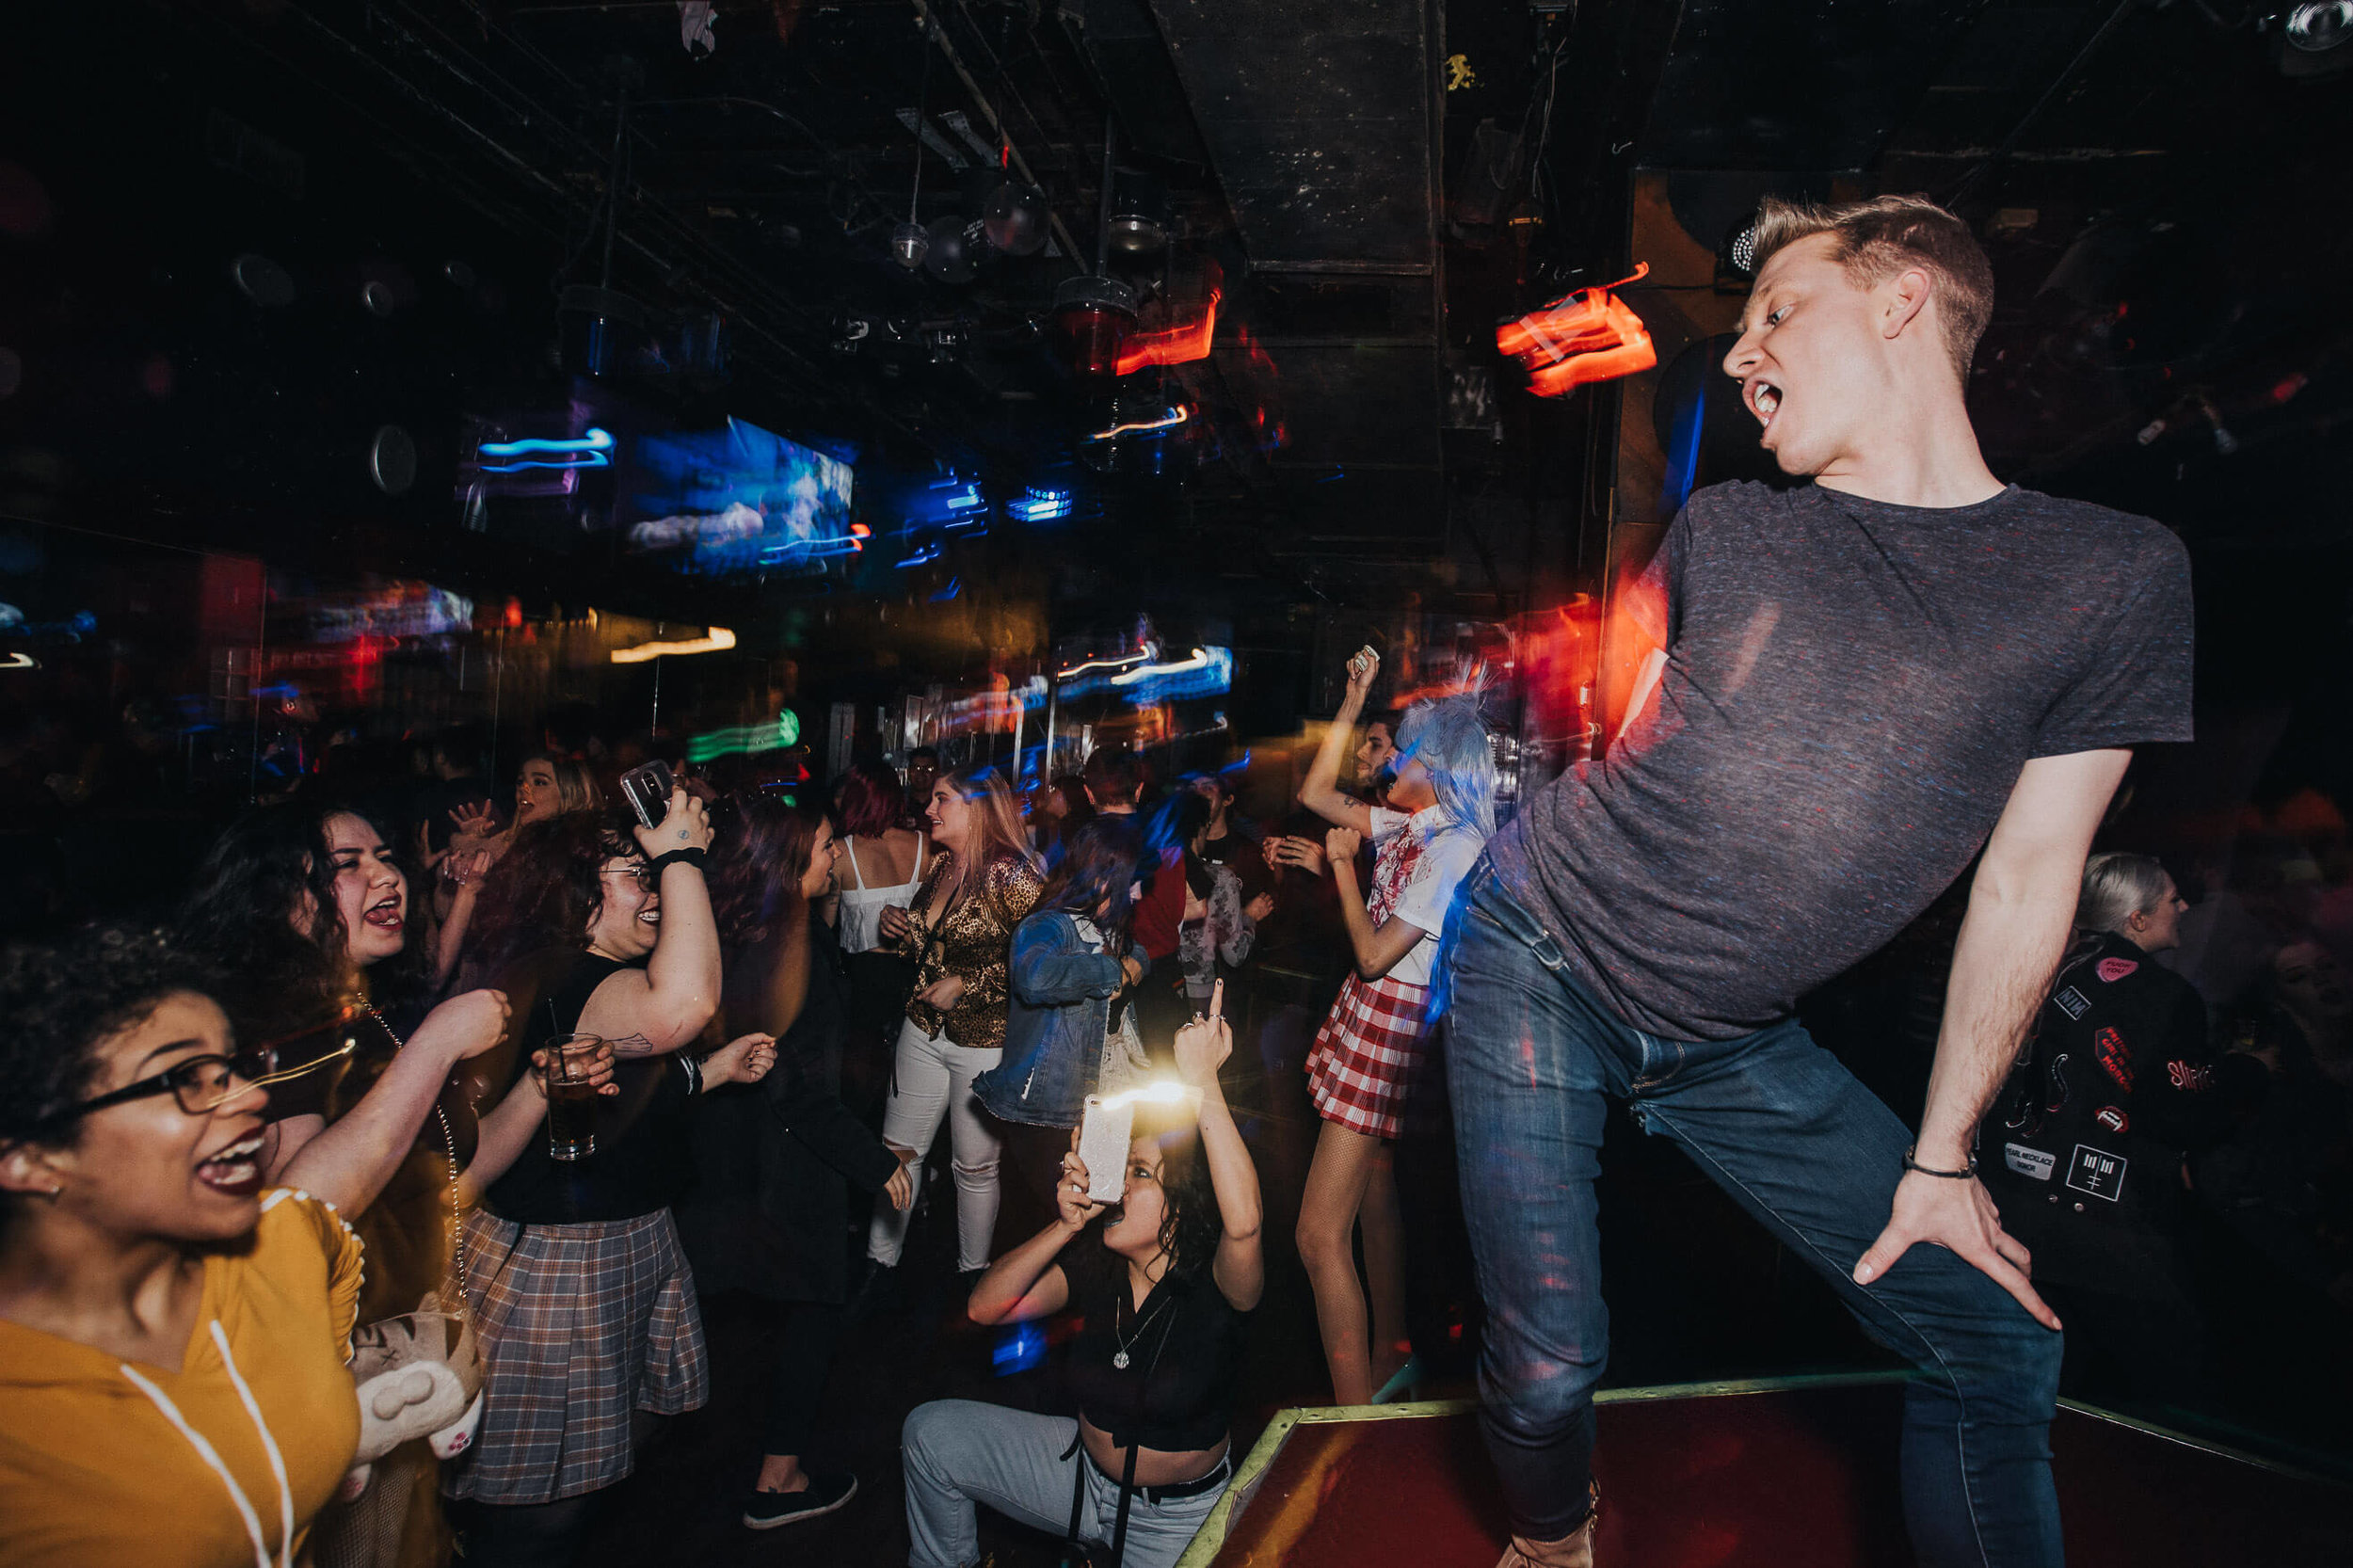 man dancing on platform in crowded night club